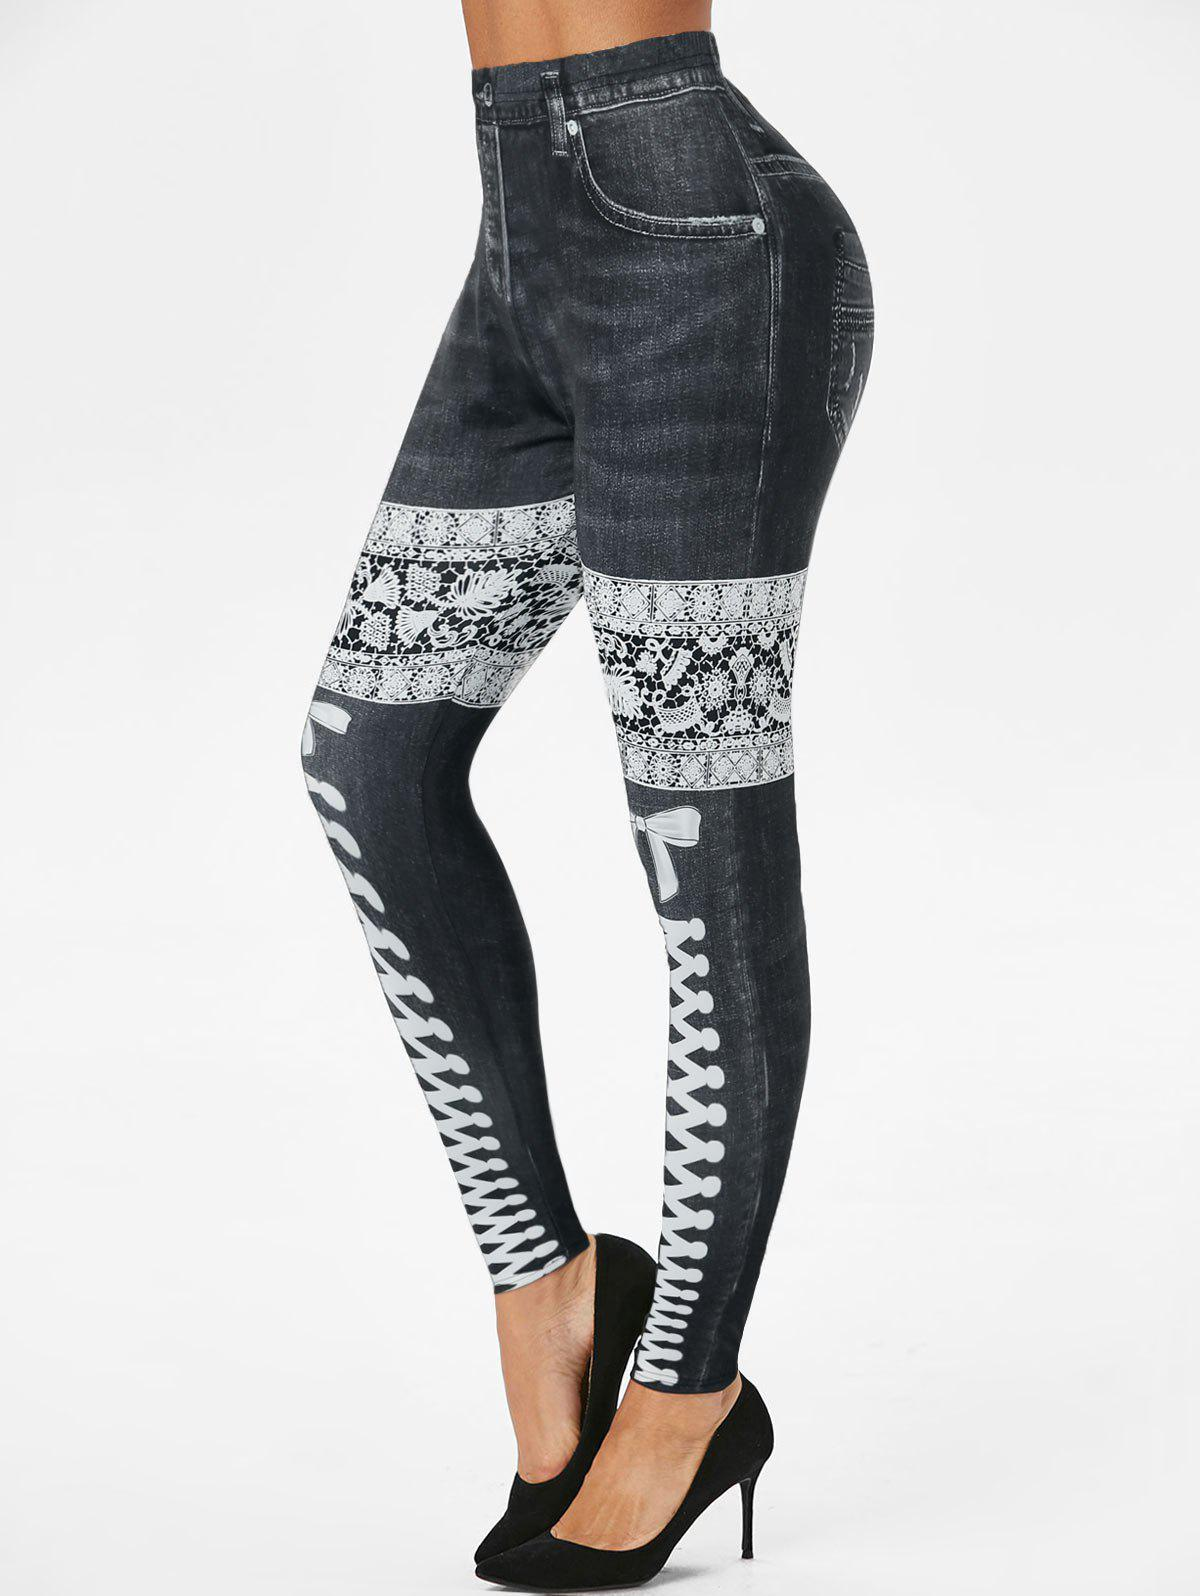 Store 3D Lace Up Denim Print Skinny Jeggings